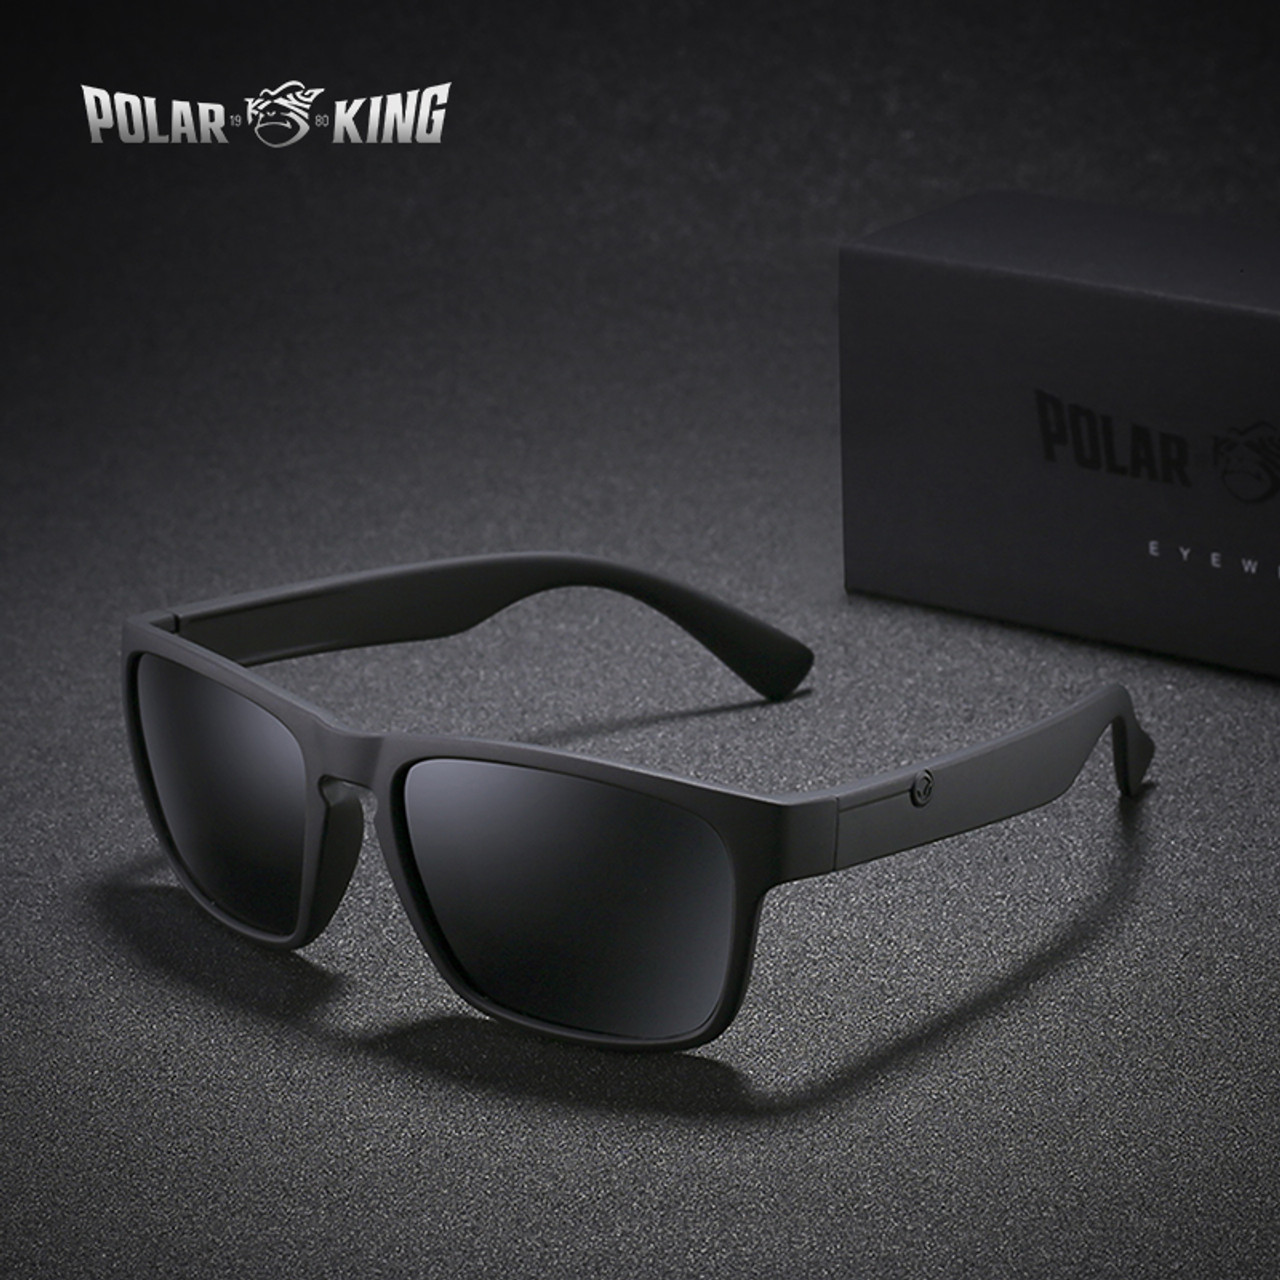 723e8c9943b6a POLARKING Brand Polarized Sunglasses For Men Plastic Oculos de sol Men s  Fashion Square Driving Eyewear Travel ...